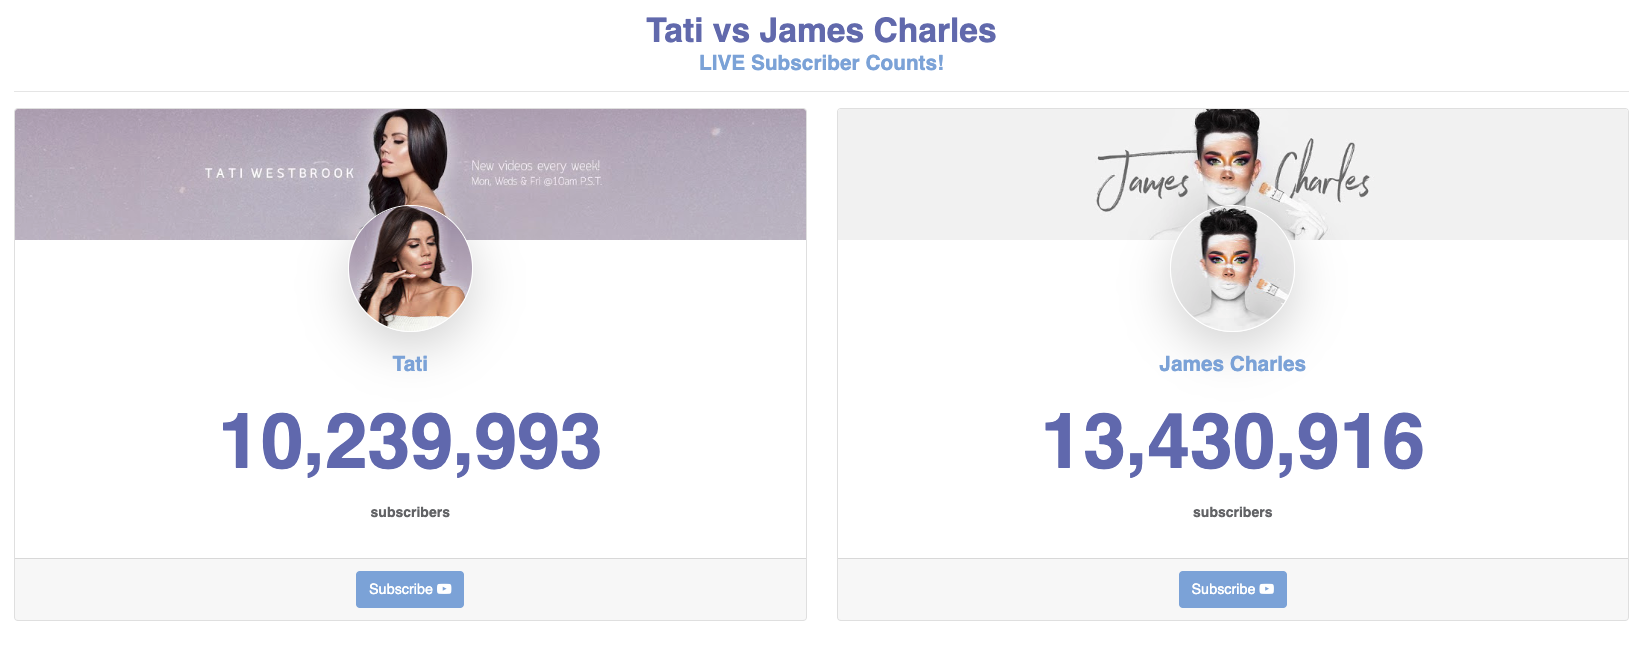 Did Tati Westbook inflict a lasting blow to James Charles' YouTube